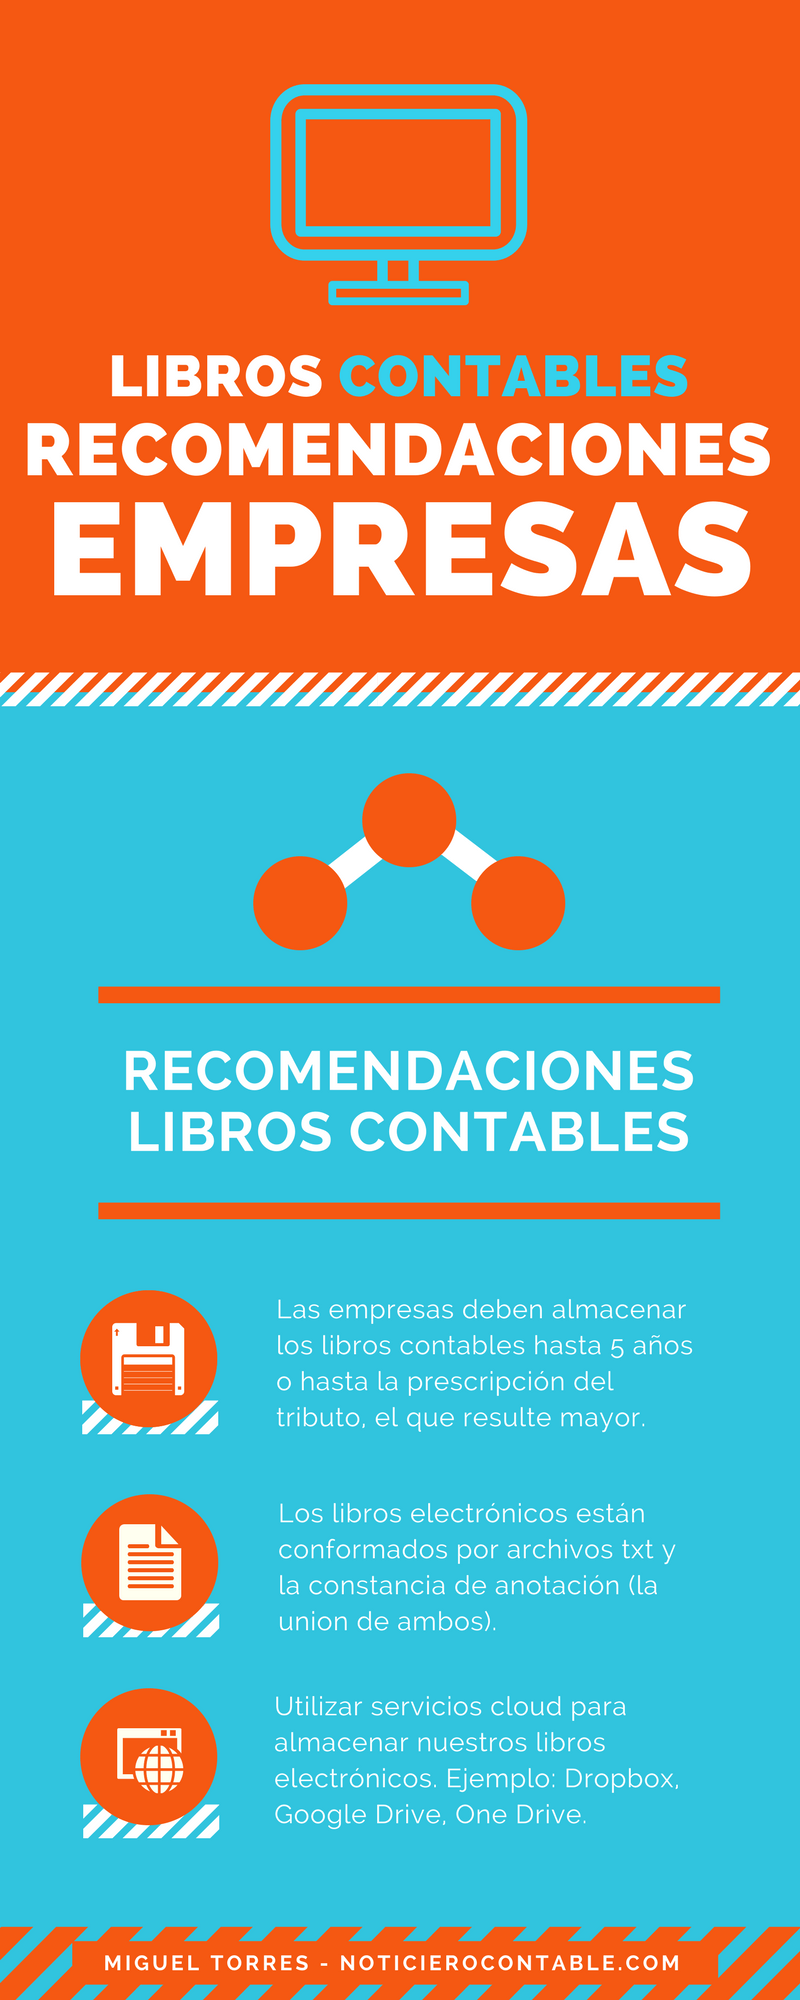 guardar Libros Contables electronicos